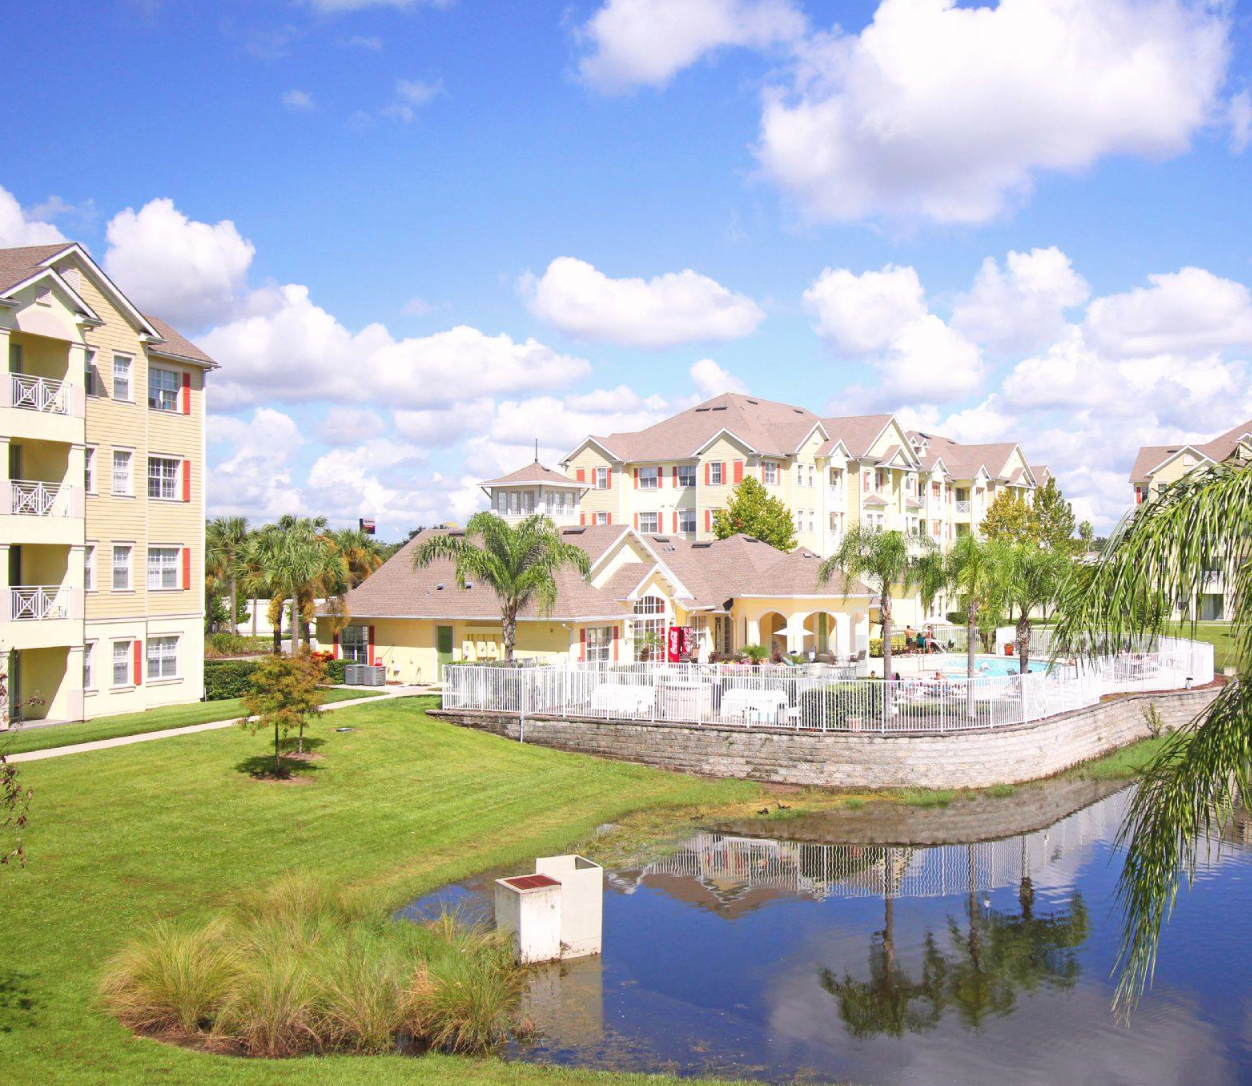 The Grass Is Greener At Cane Island Apartments In Kissimmee Fl Huge Condo Style 2 3 And 4 Bedroom Floor Plans Wit Cane Island Kissimmee Bedroom Floor Plans